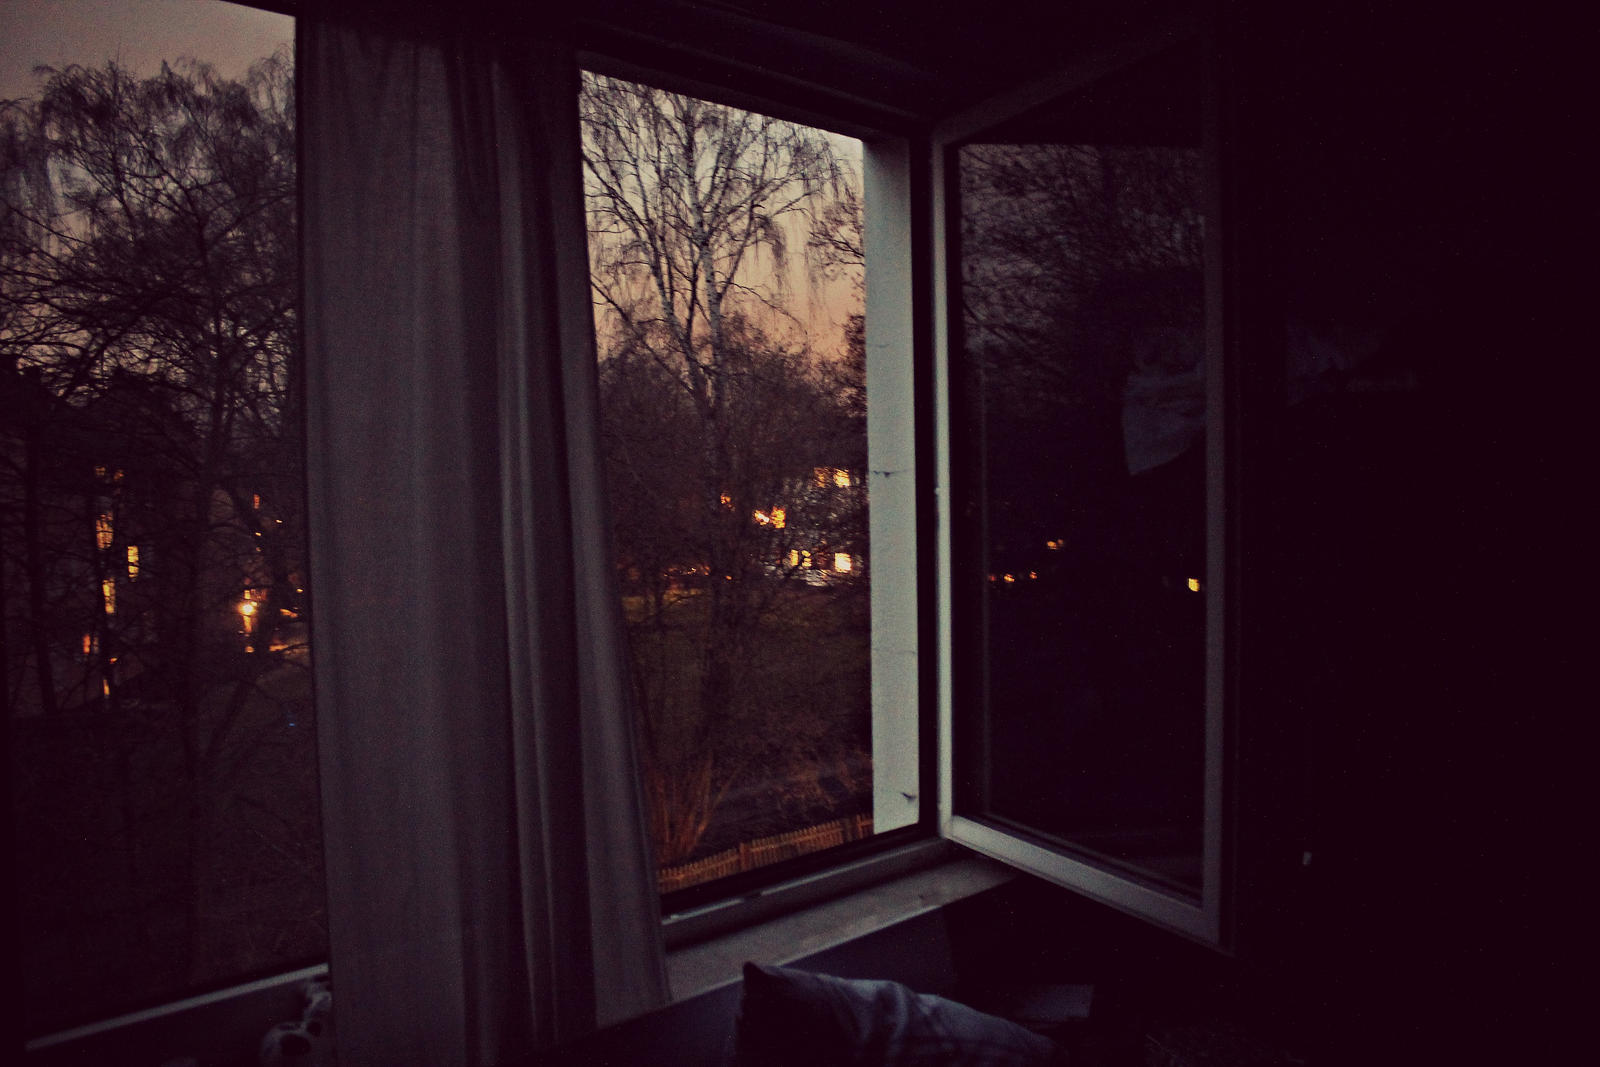 night in the room by LucaHennig